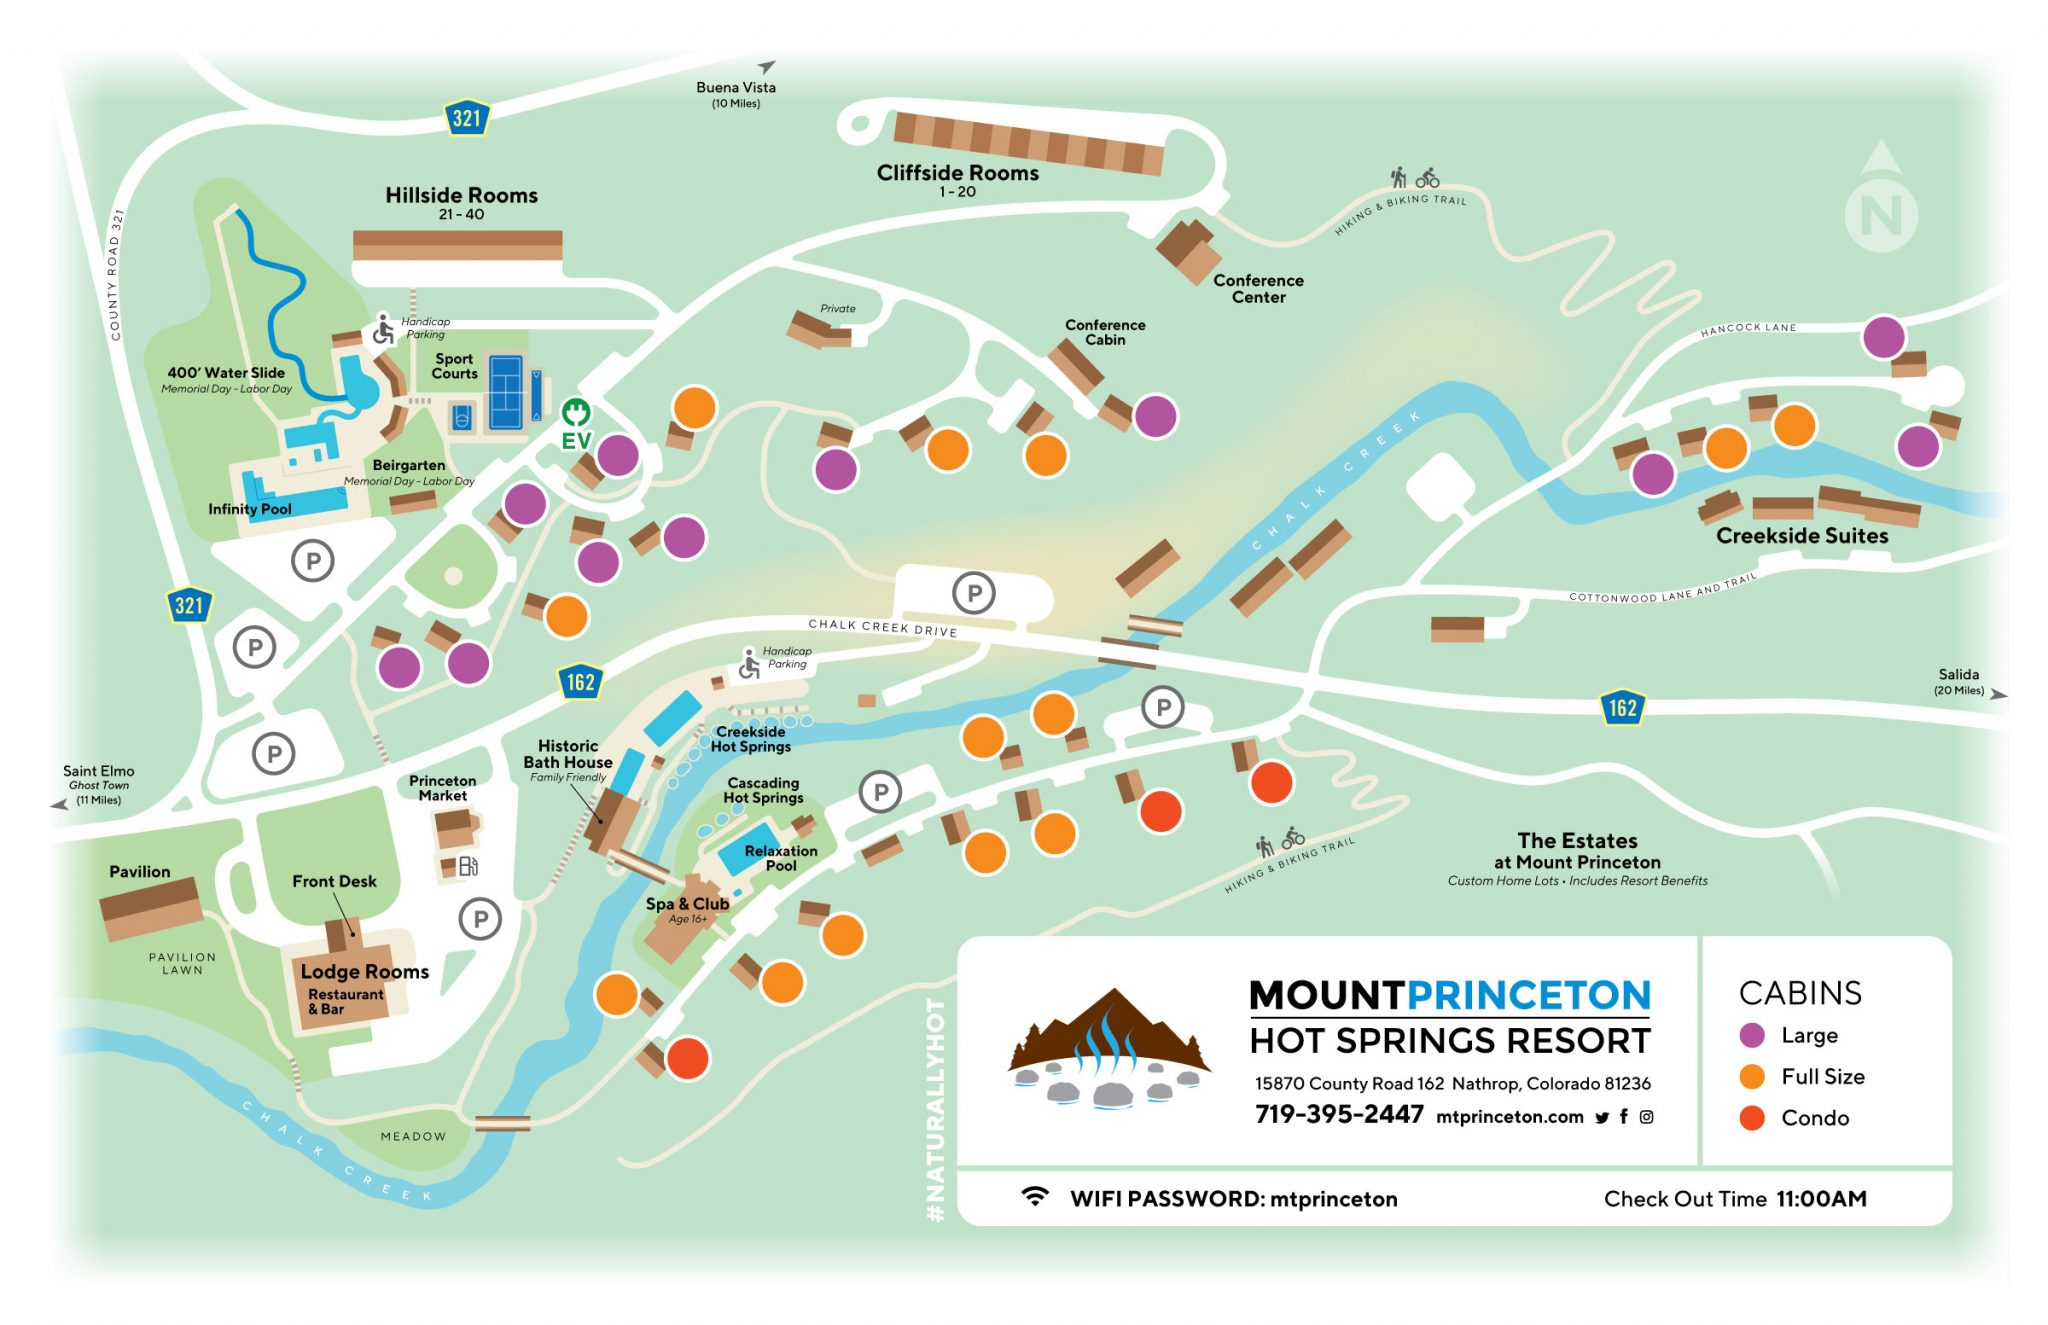 Mount Princeton Hot Springs Resort Map